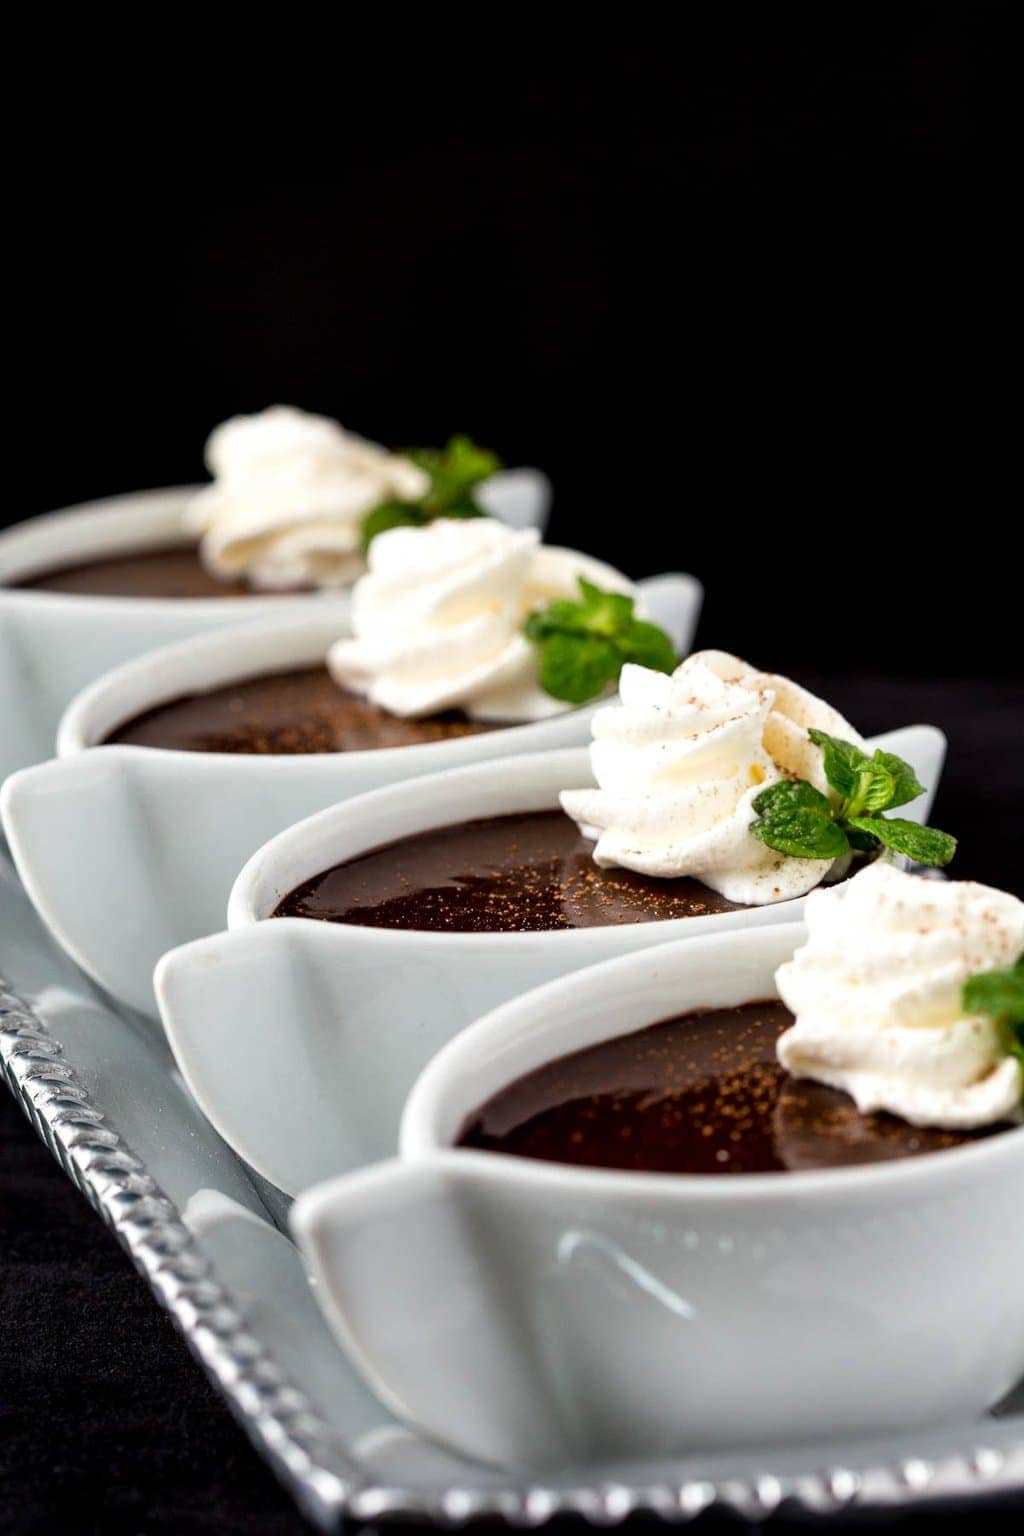 Photo of a line of white porcelain dessert cups filled with Blender Chocolate Pots de Crème.